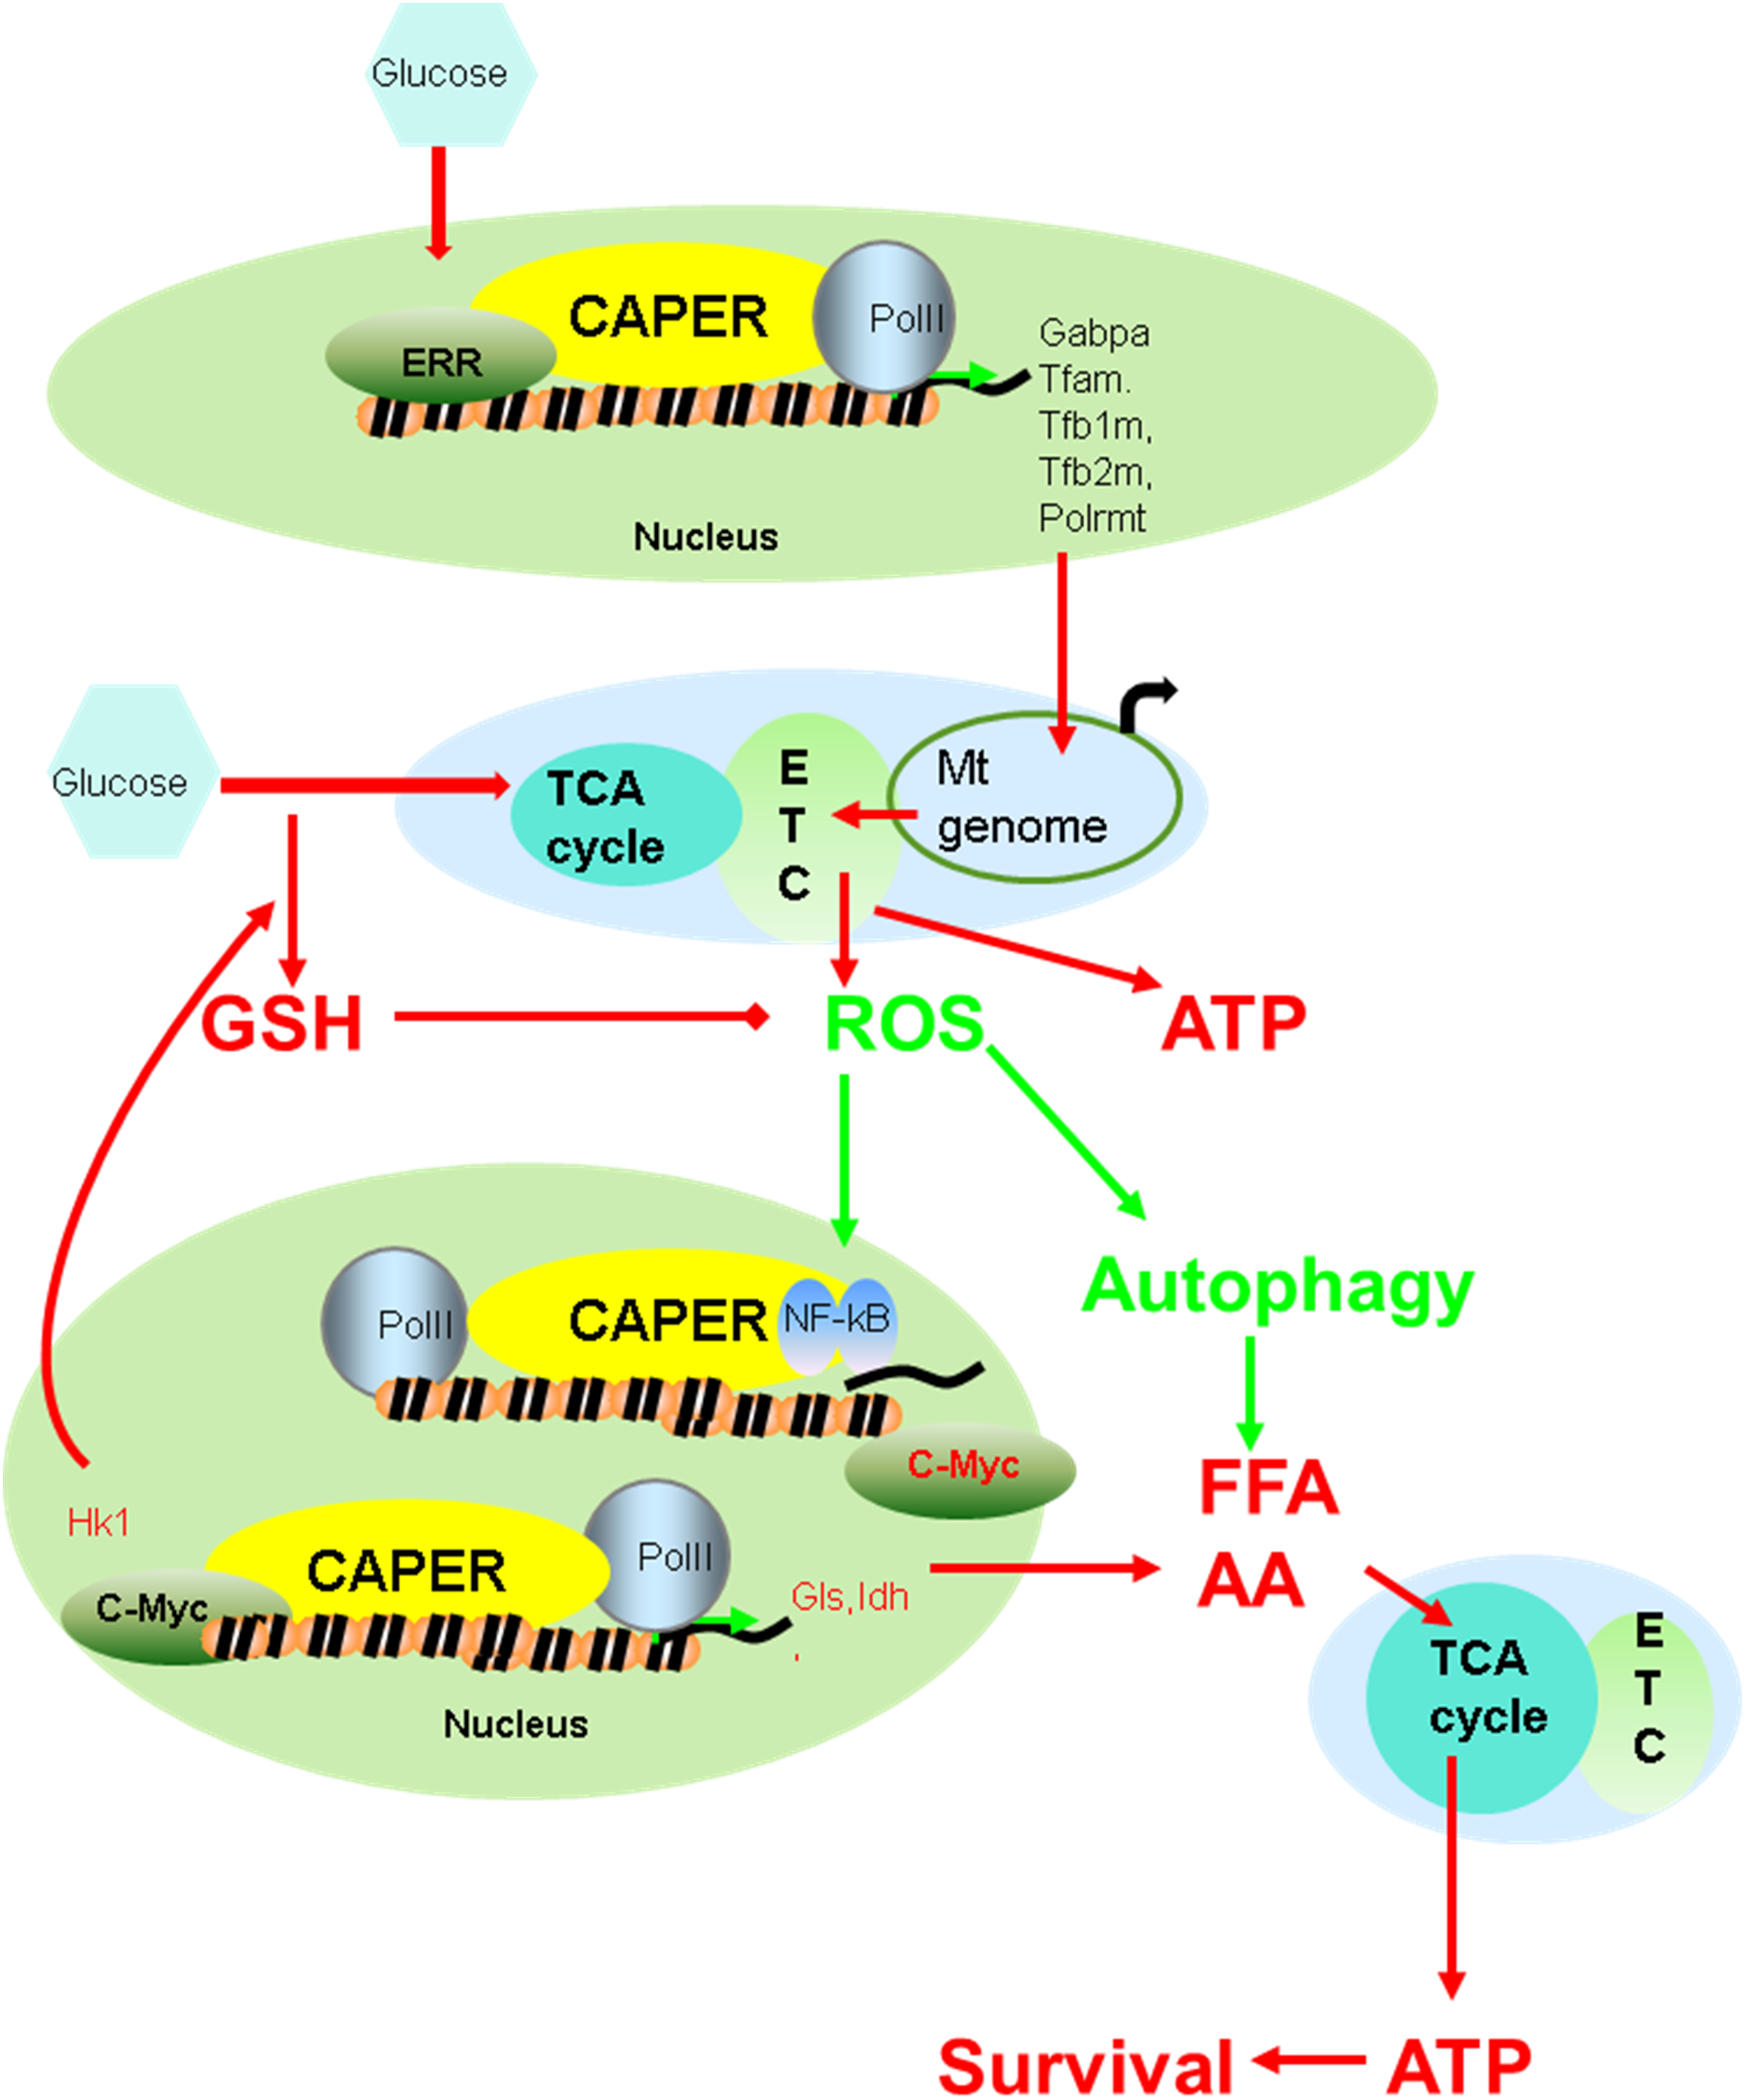 A schematic model suggesting how CAPER functions.